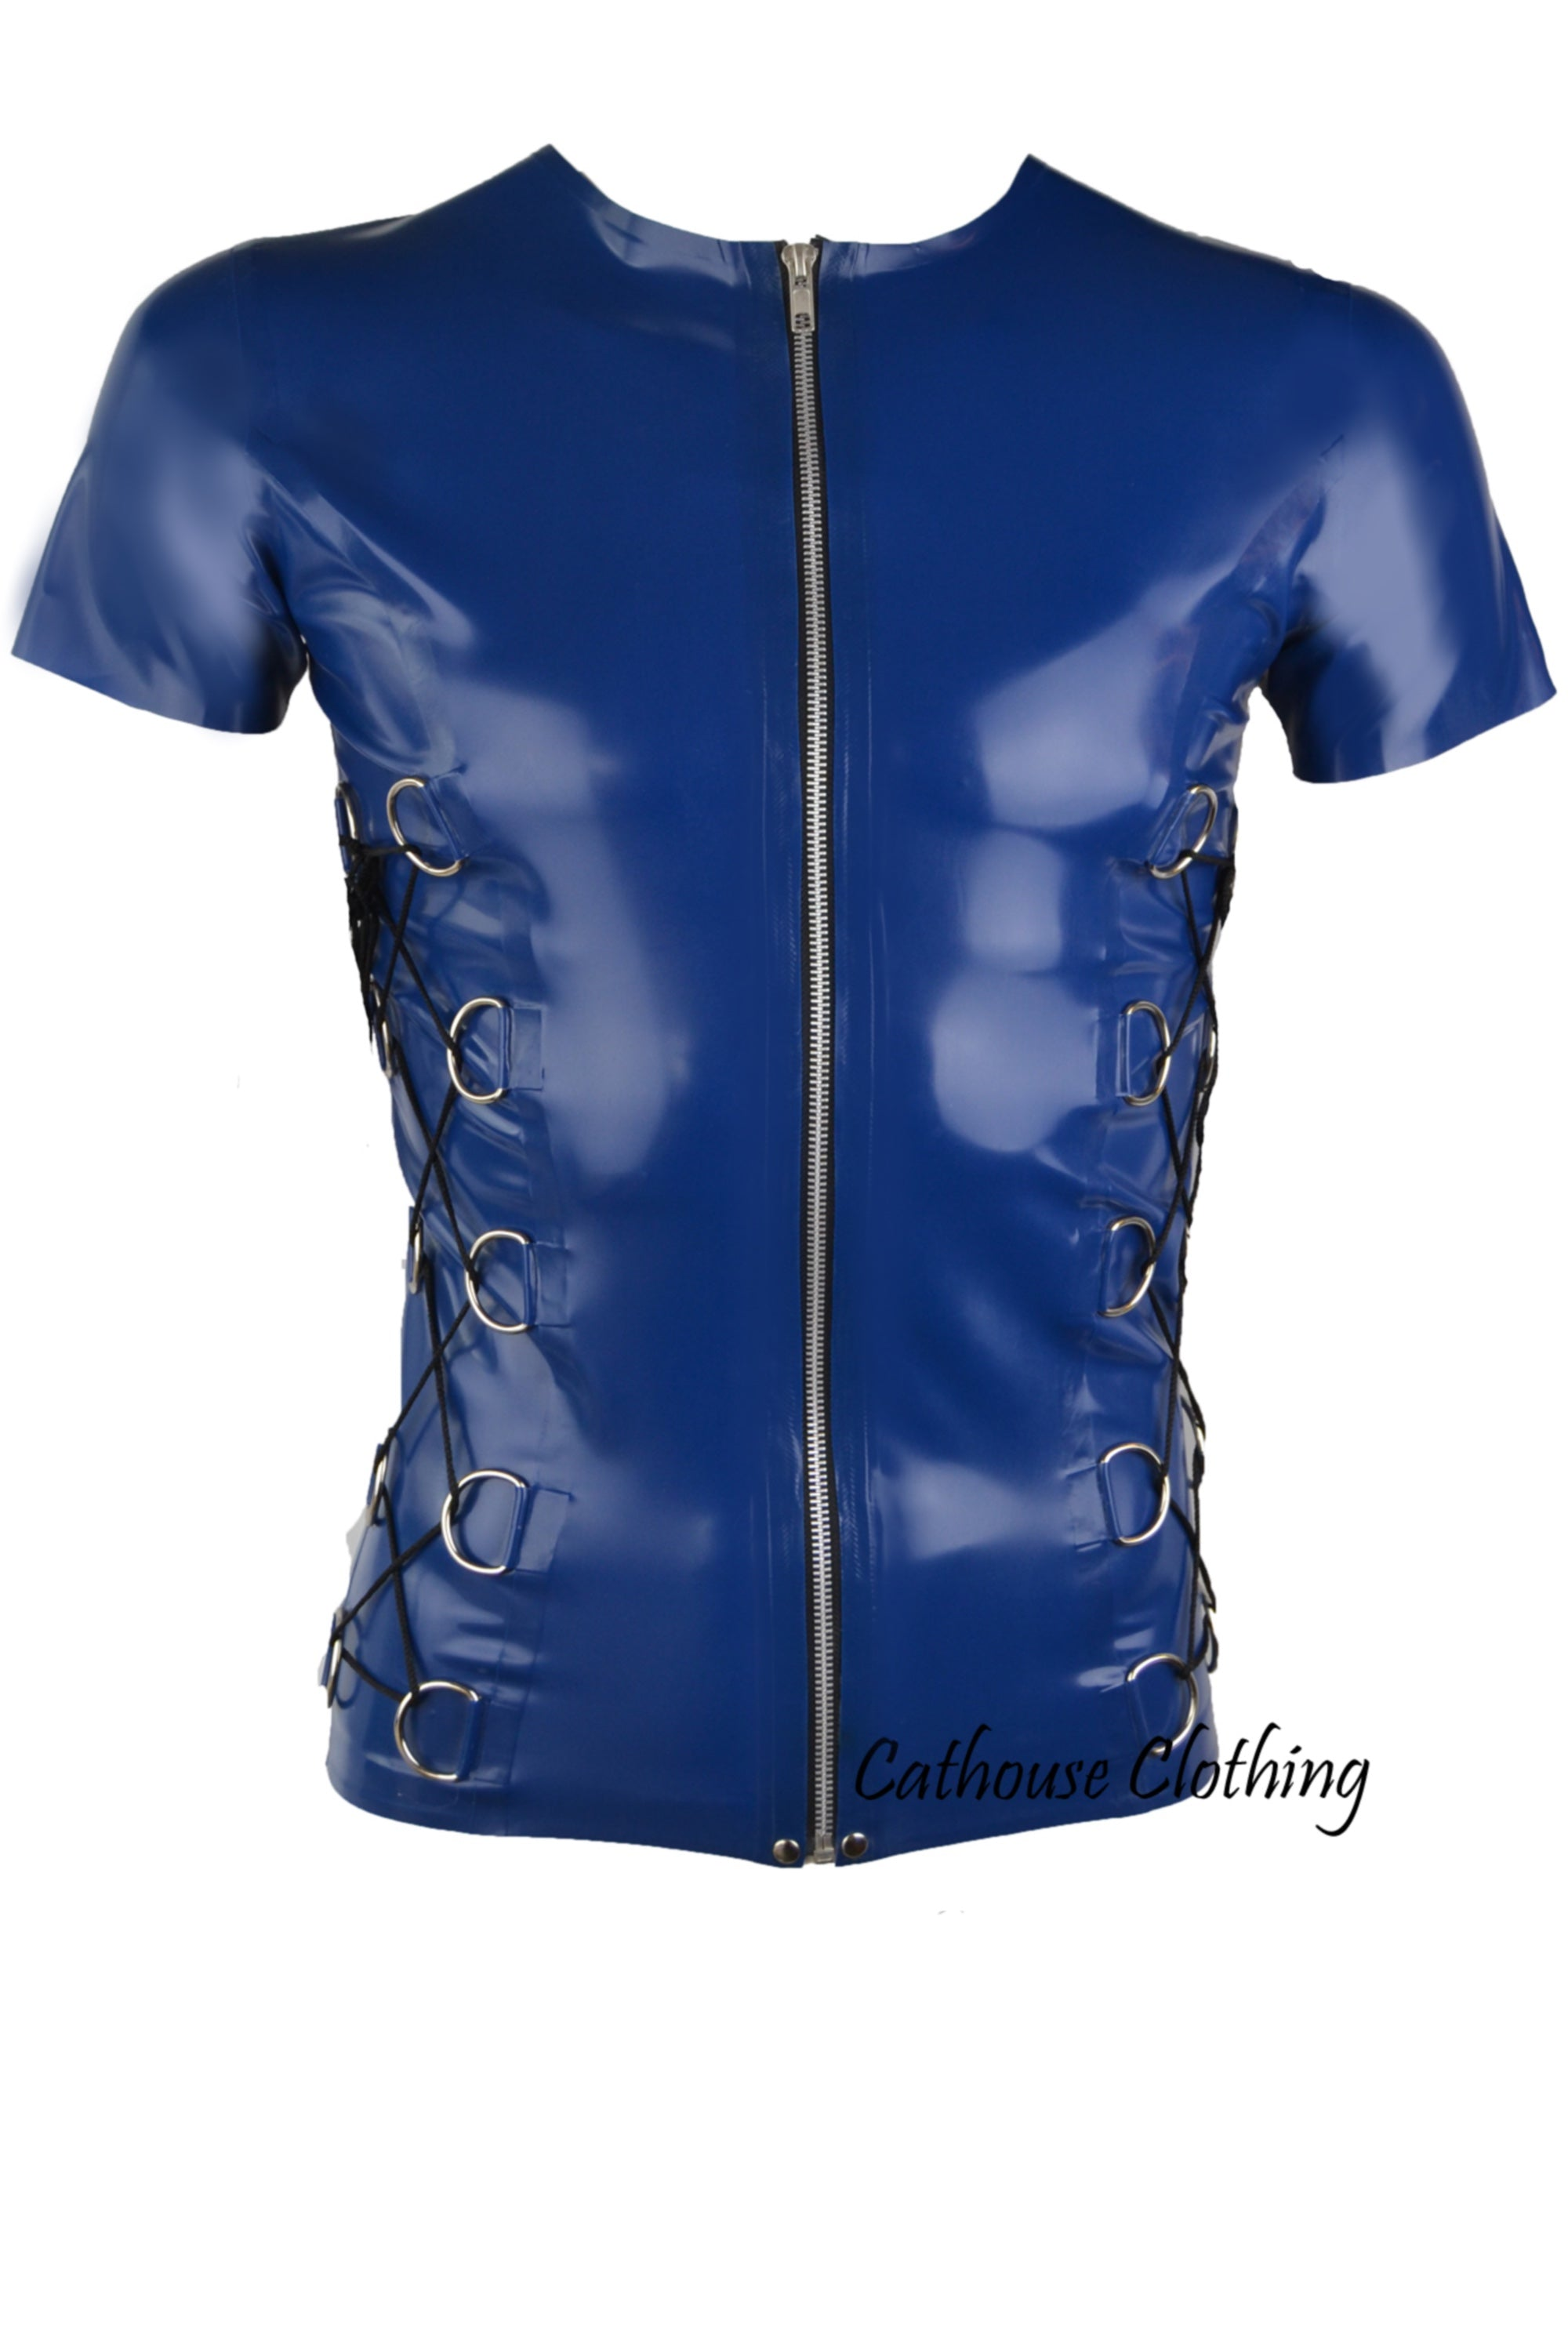 Men's Latex D-ring T-shirt